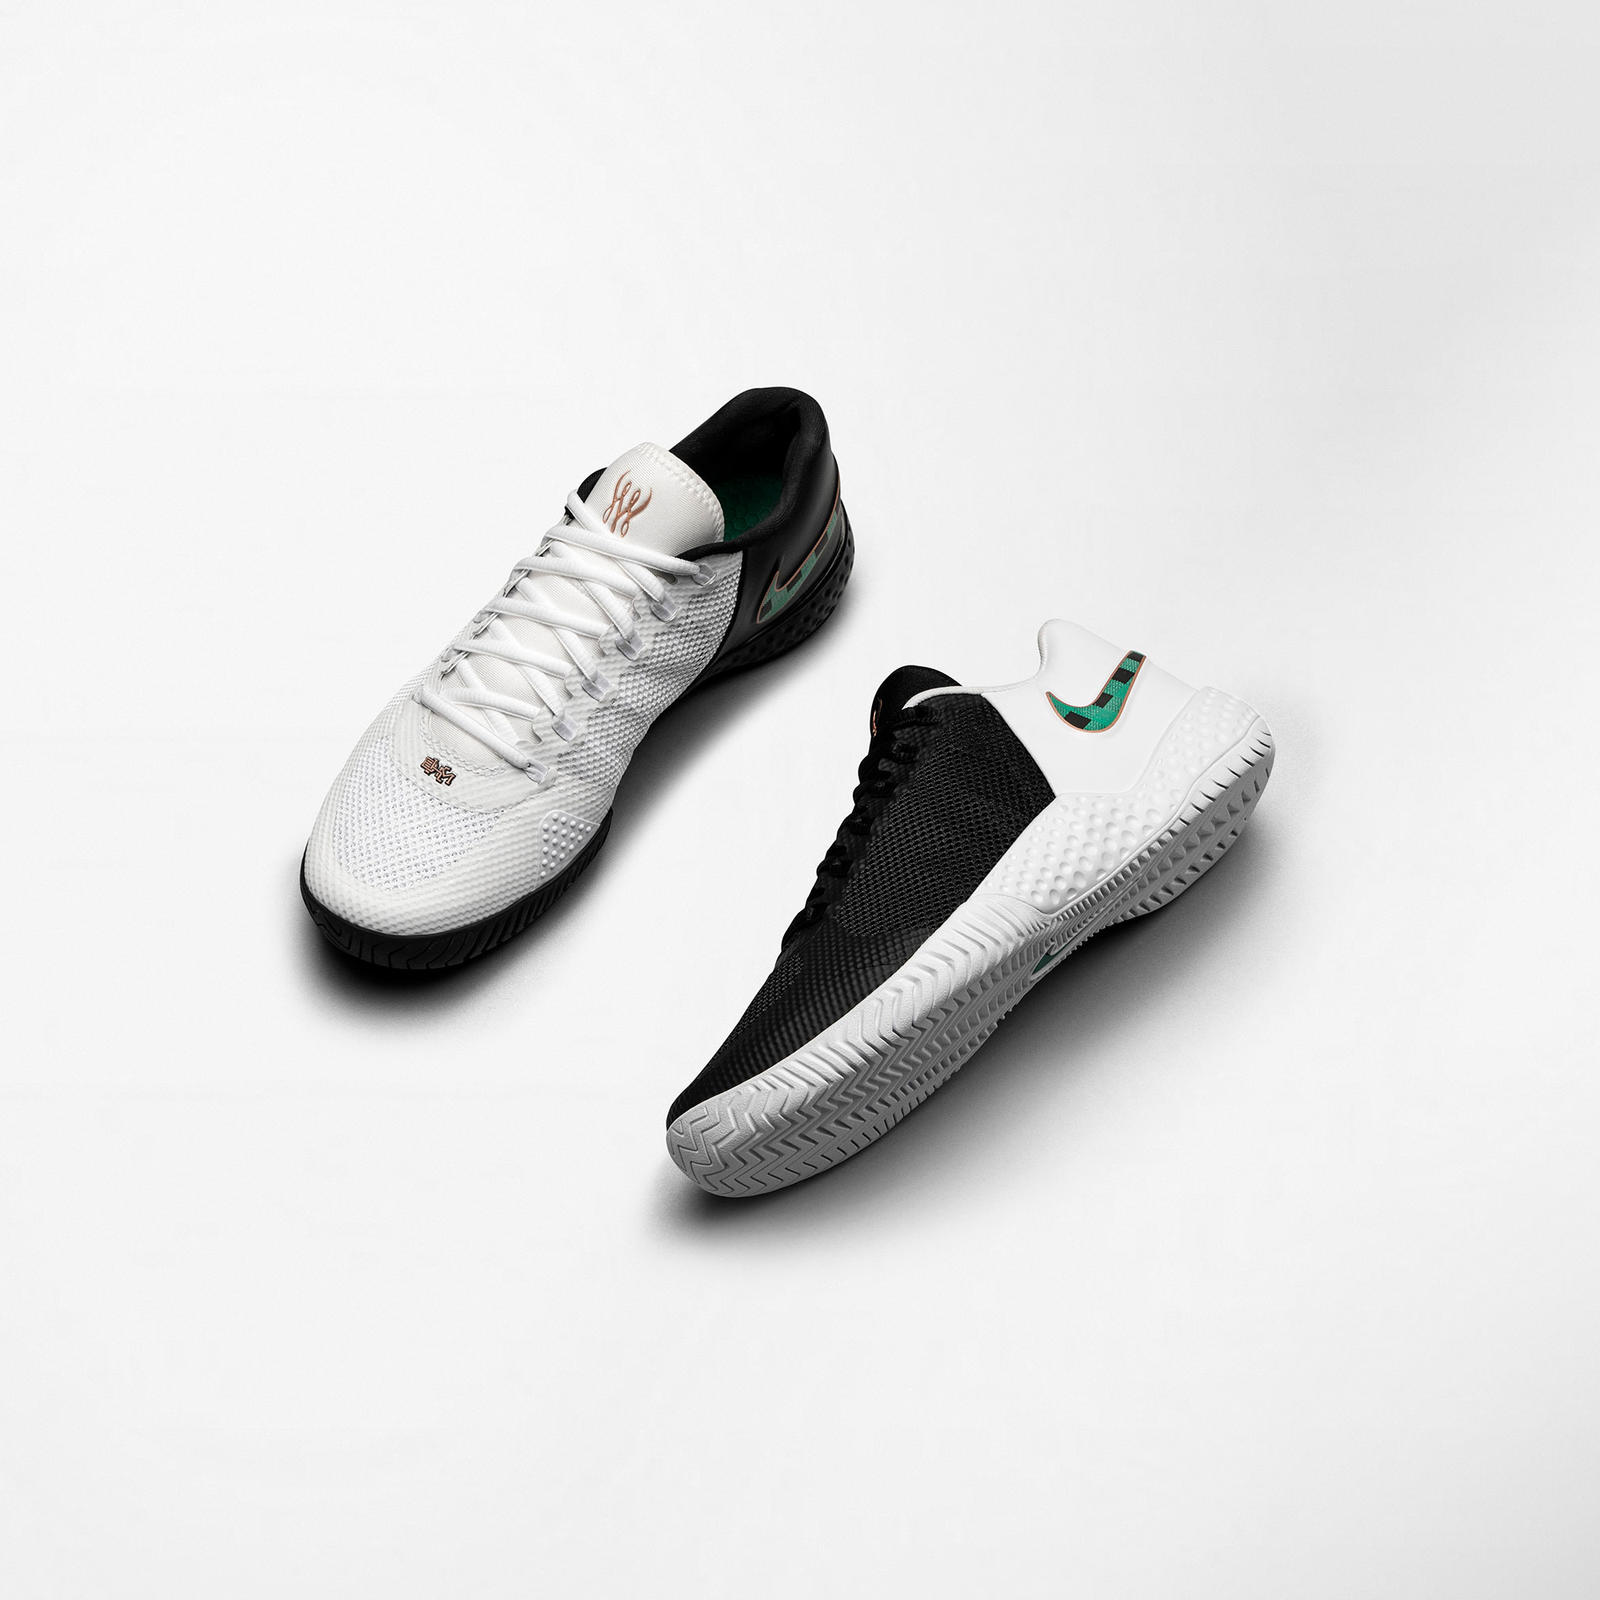 4205e0bce55 Nike Black History Month Collection 2019 - Nike News